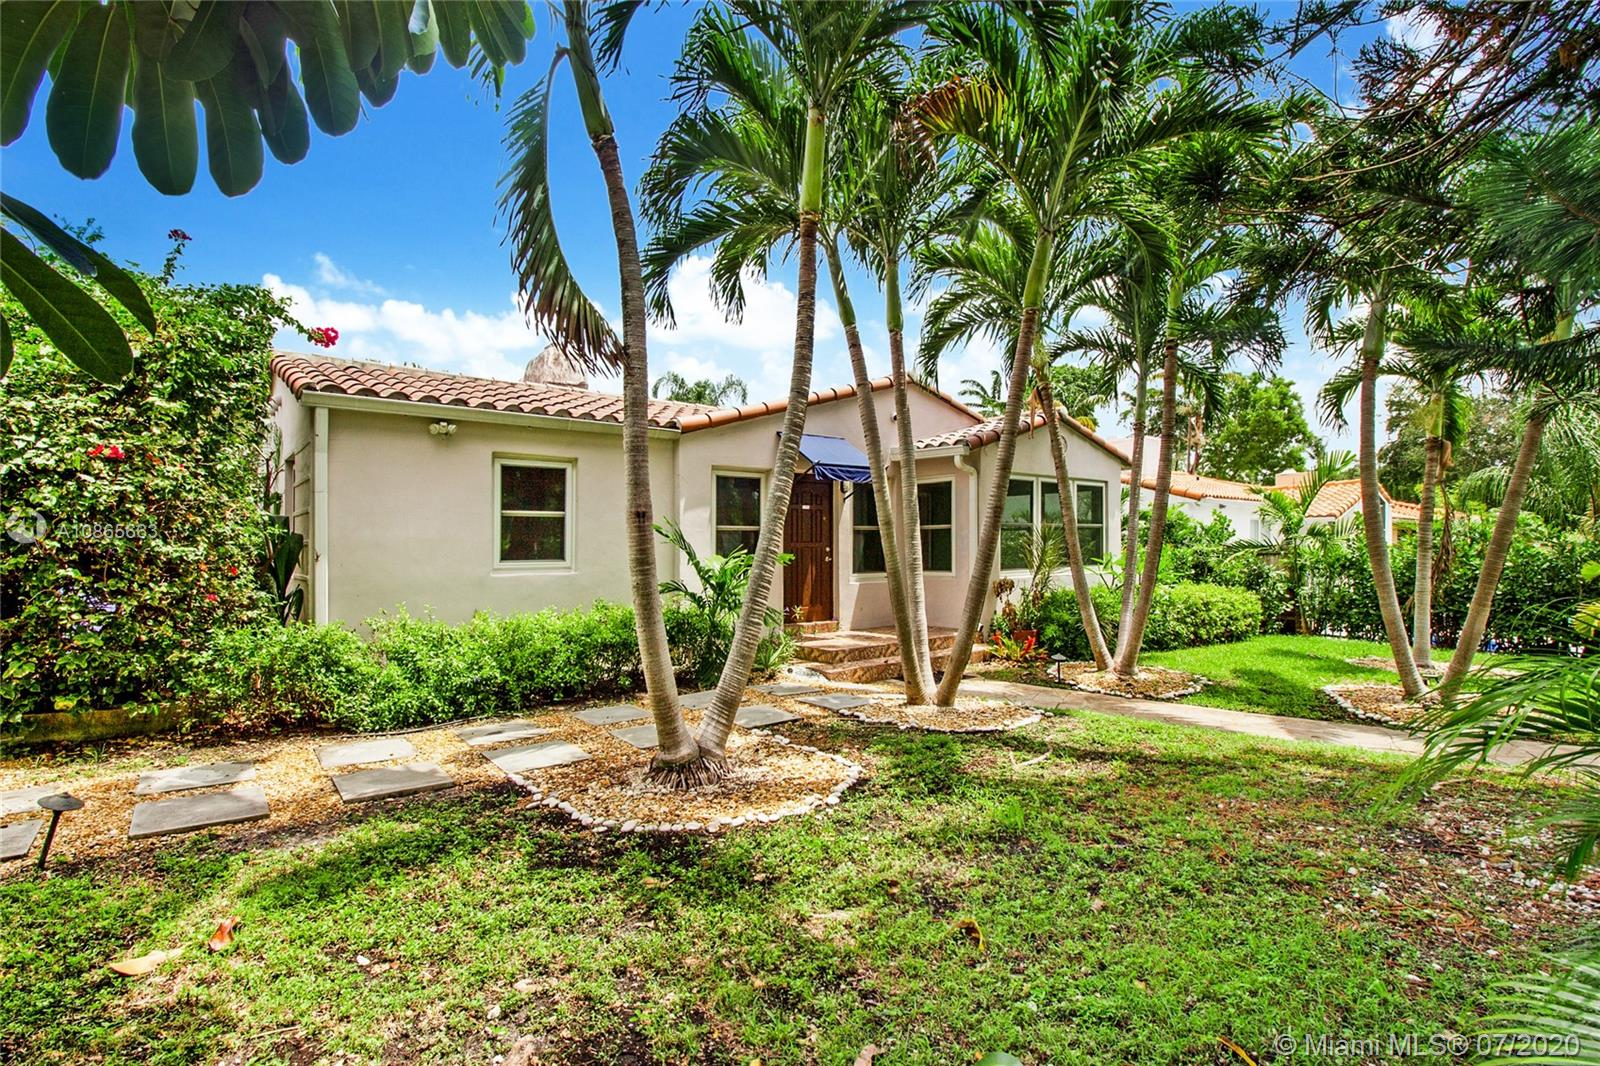 651 NE 72nd Ter, Miami, Florida 33138, 3 Bedrooms Bedrooms, ,2 BathroomsBathrooms,Residential,For Sale,651 NE 72nd Ter,A10865663